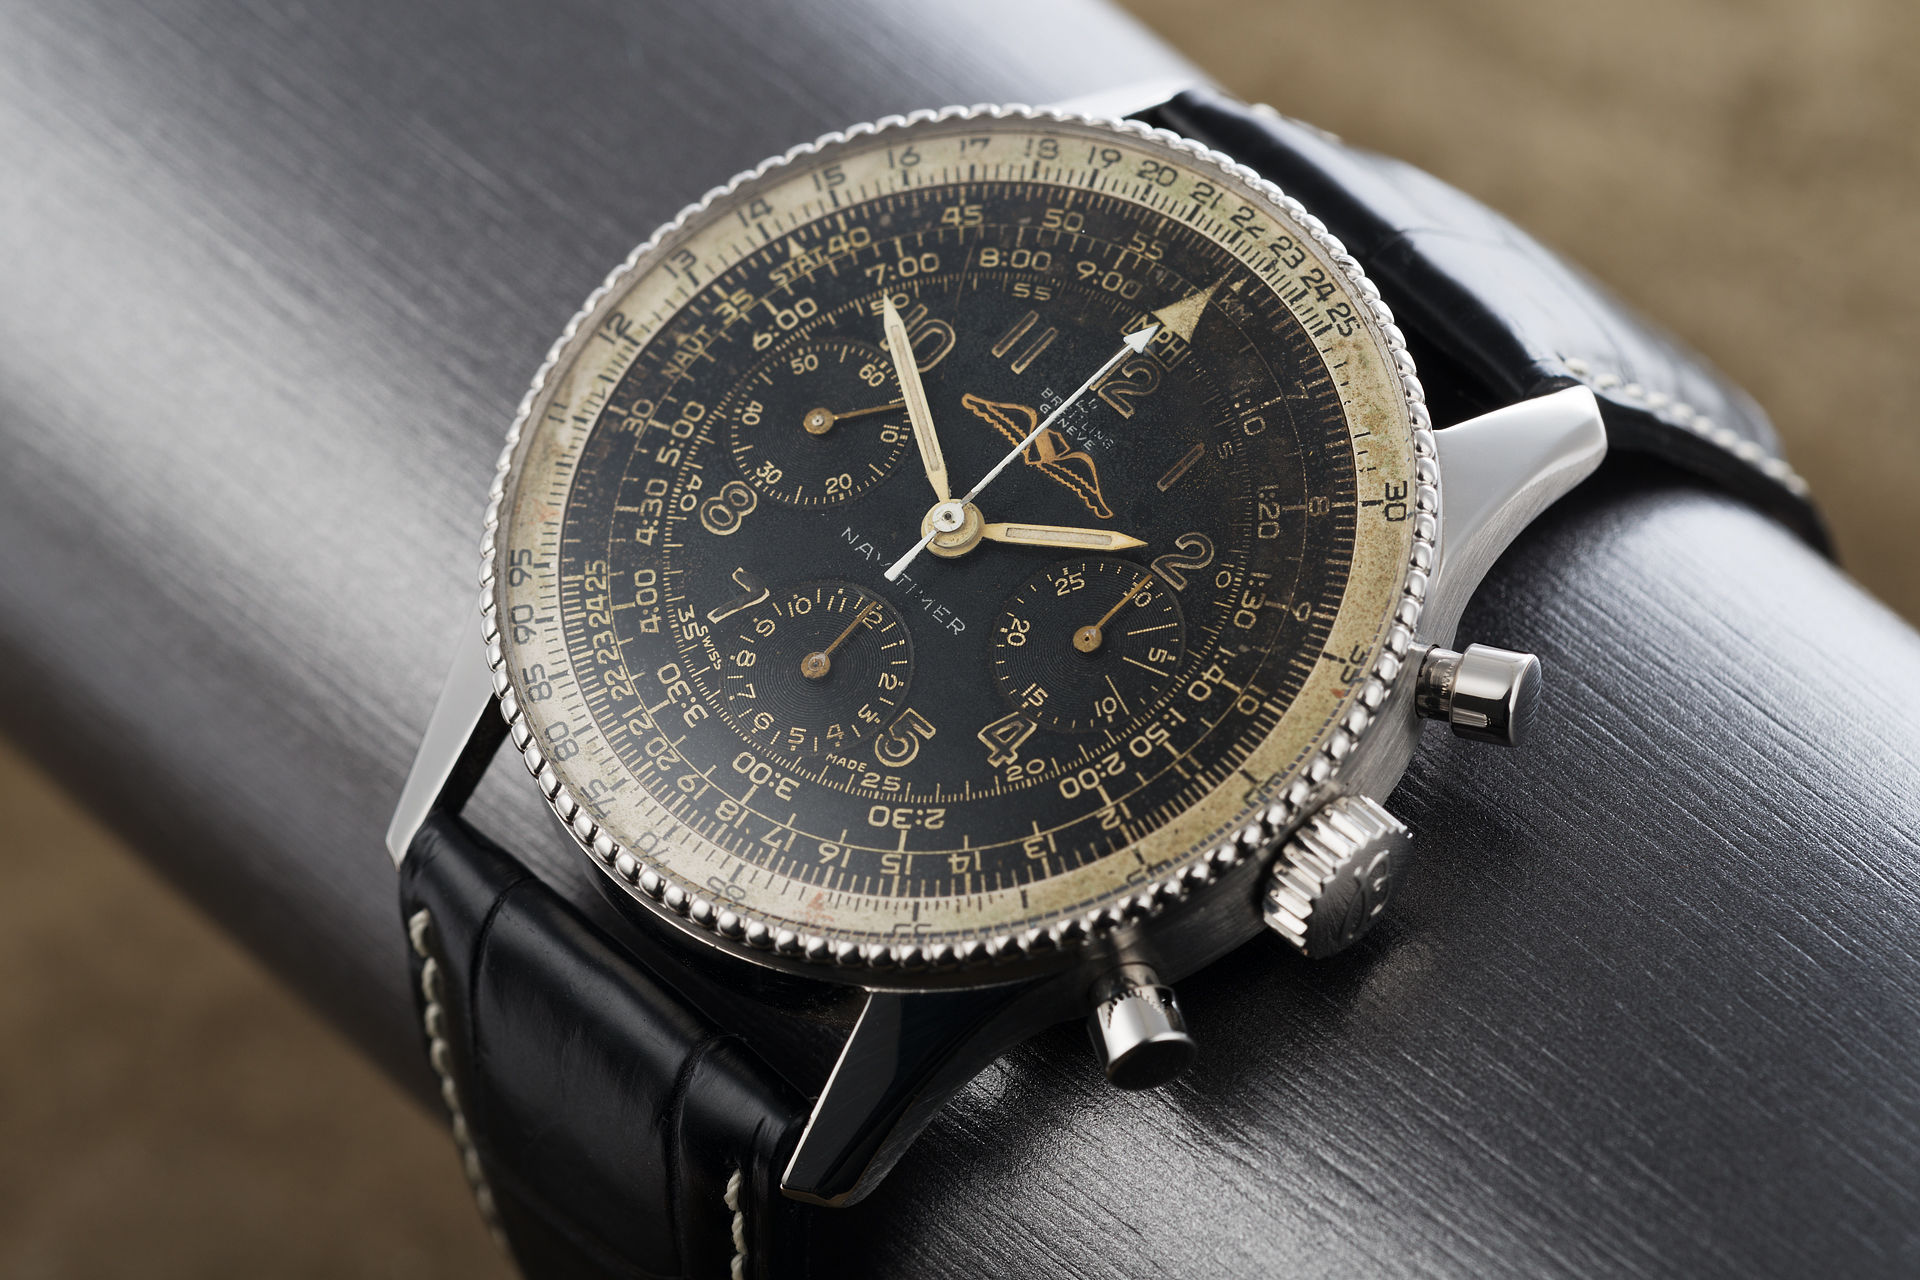 Breitling Navitimer Watches Ref 806 Early All Black Dial The Watch